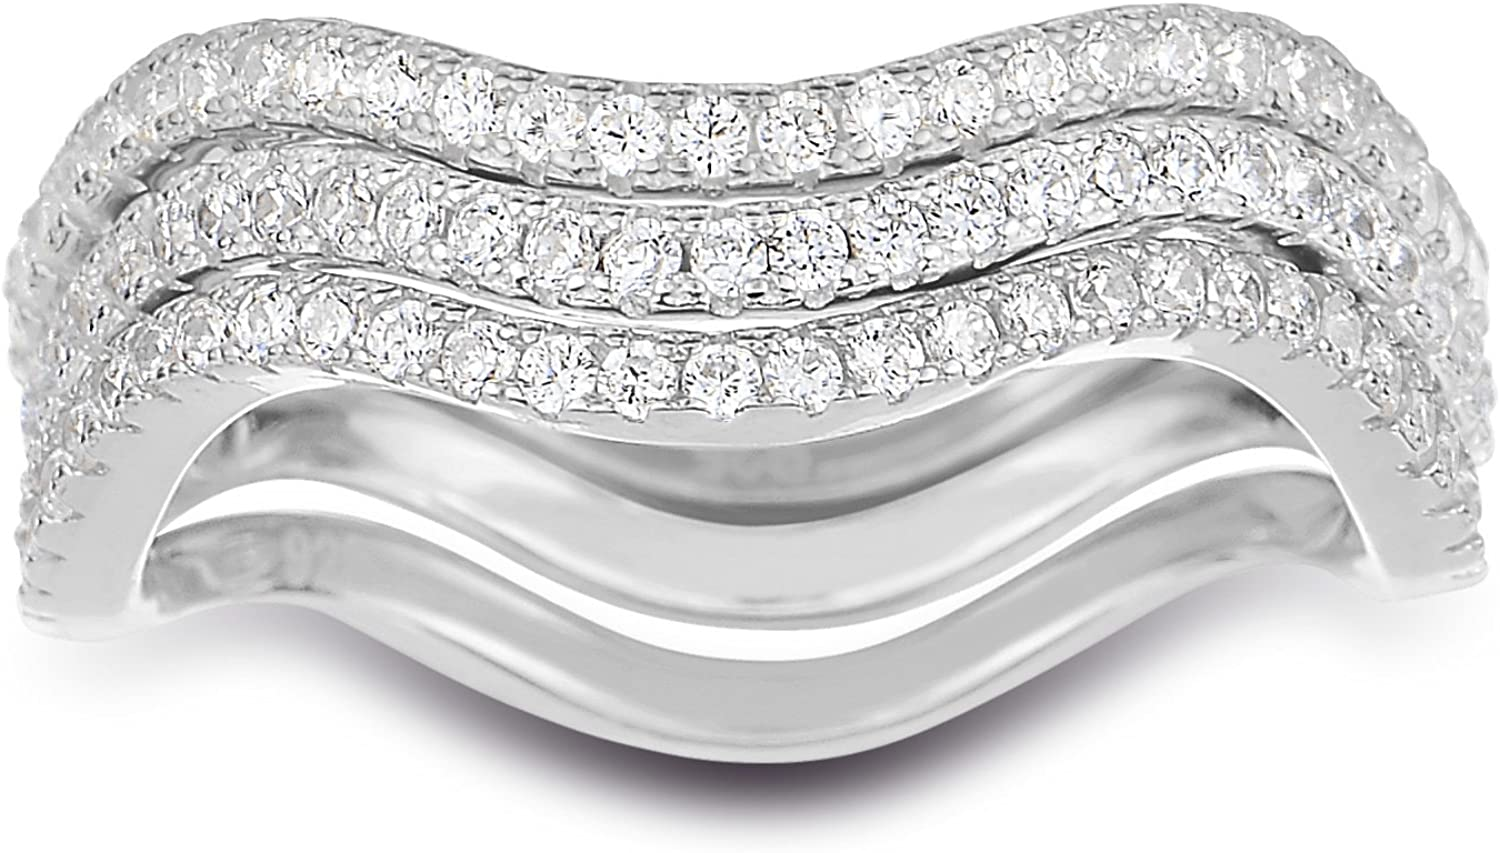 Band Width Spoil Cupid 925 Sterling Silver Cubic Zirconia 3pcs Wavy Stackable Ring Eternity Bands 1.55mm Each